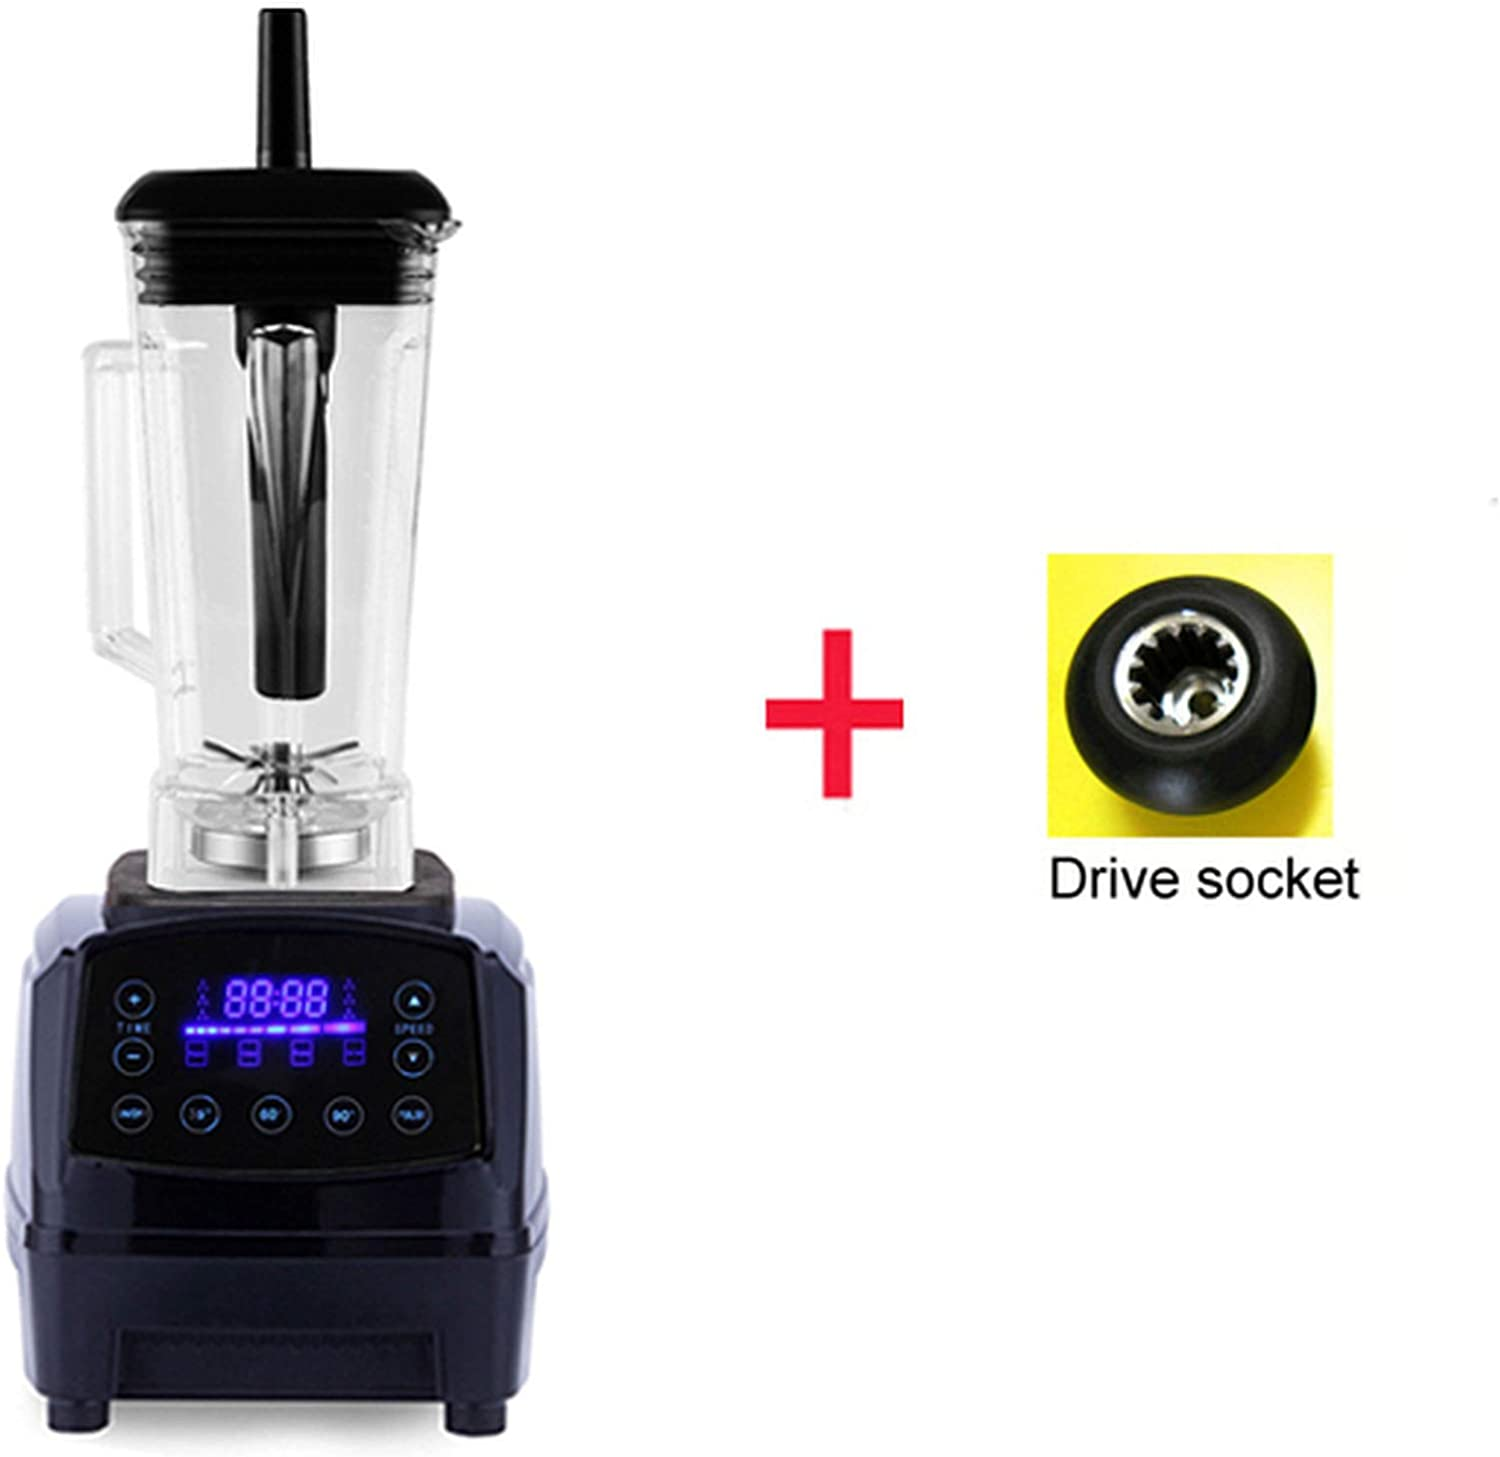 Automatic Digital Smart Timer Program 2200W Heavy Duty Power Blender Mixer Juicer Food Processor Ice Smoothie Bar Fruit,Black extra driver